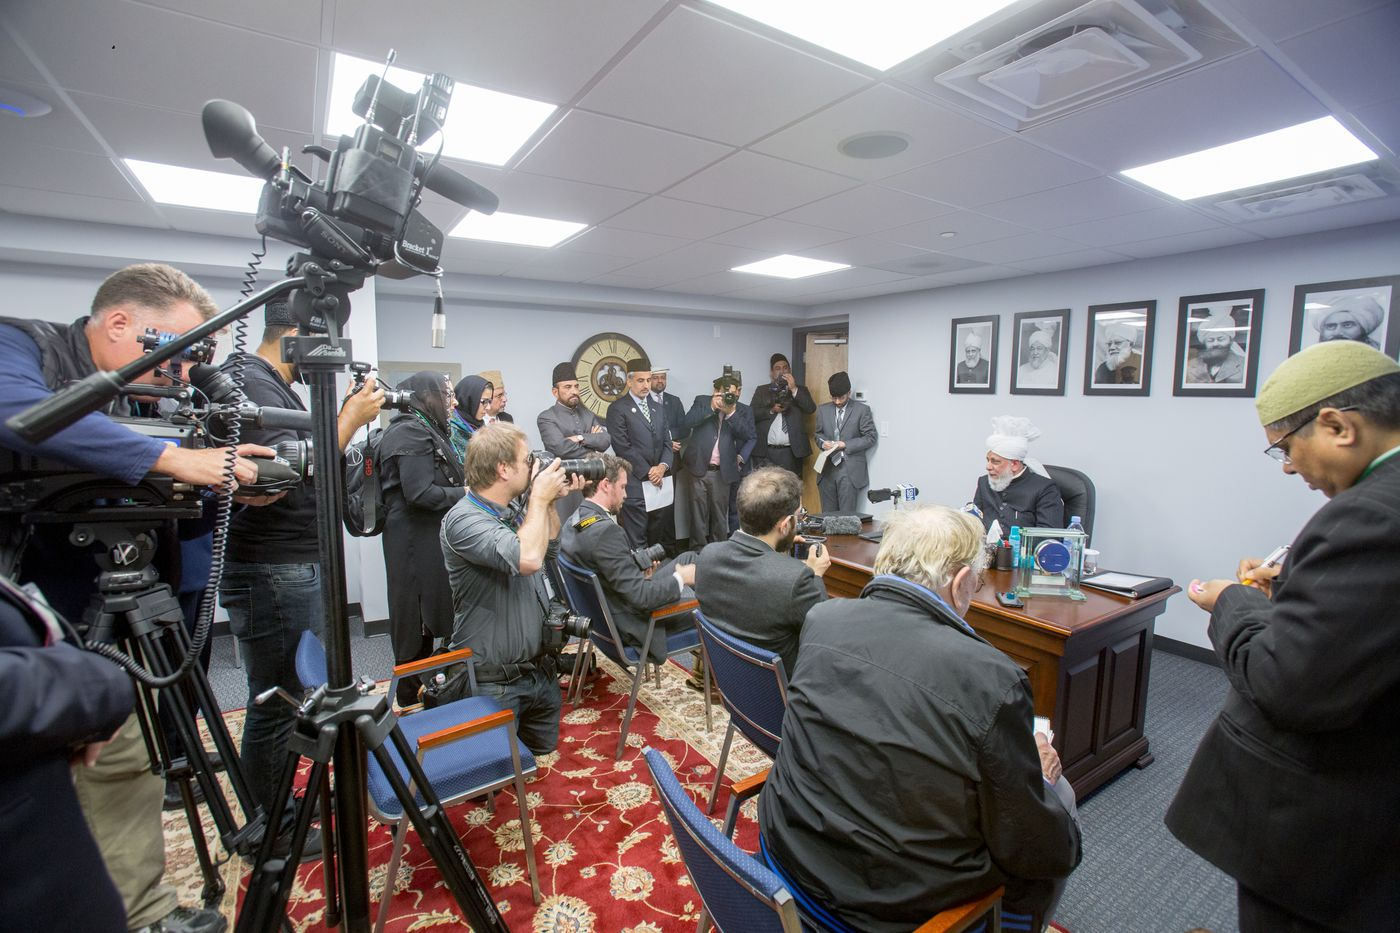 Mirza Masroor Ahmad, world spiritual leader of the Ahmadiyya Muslim Community, meets the Philly media.